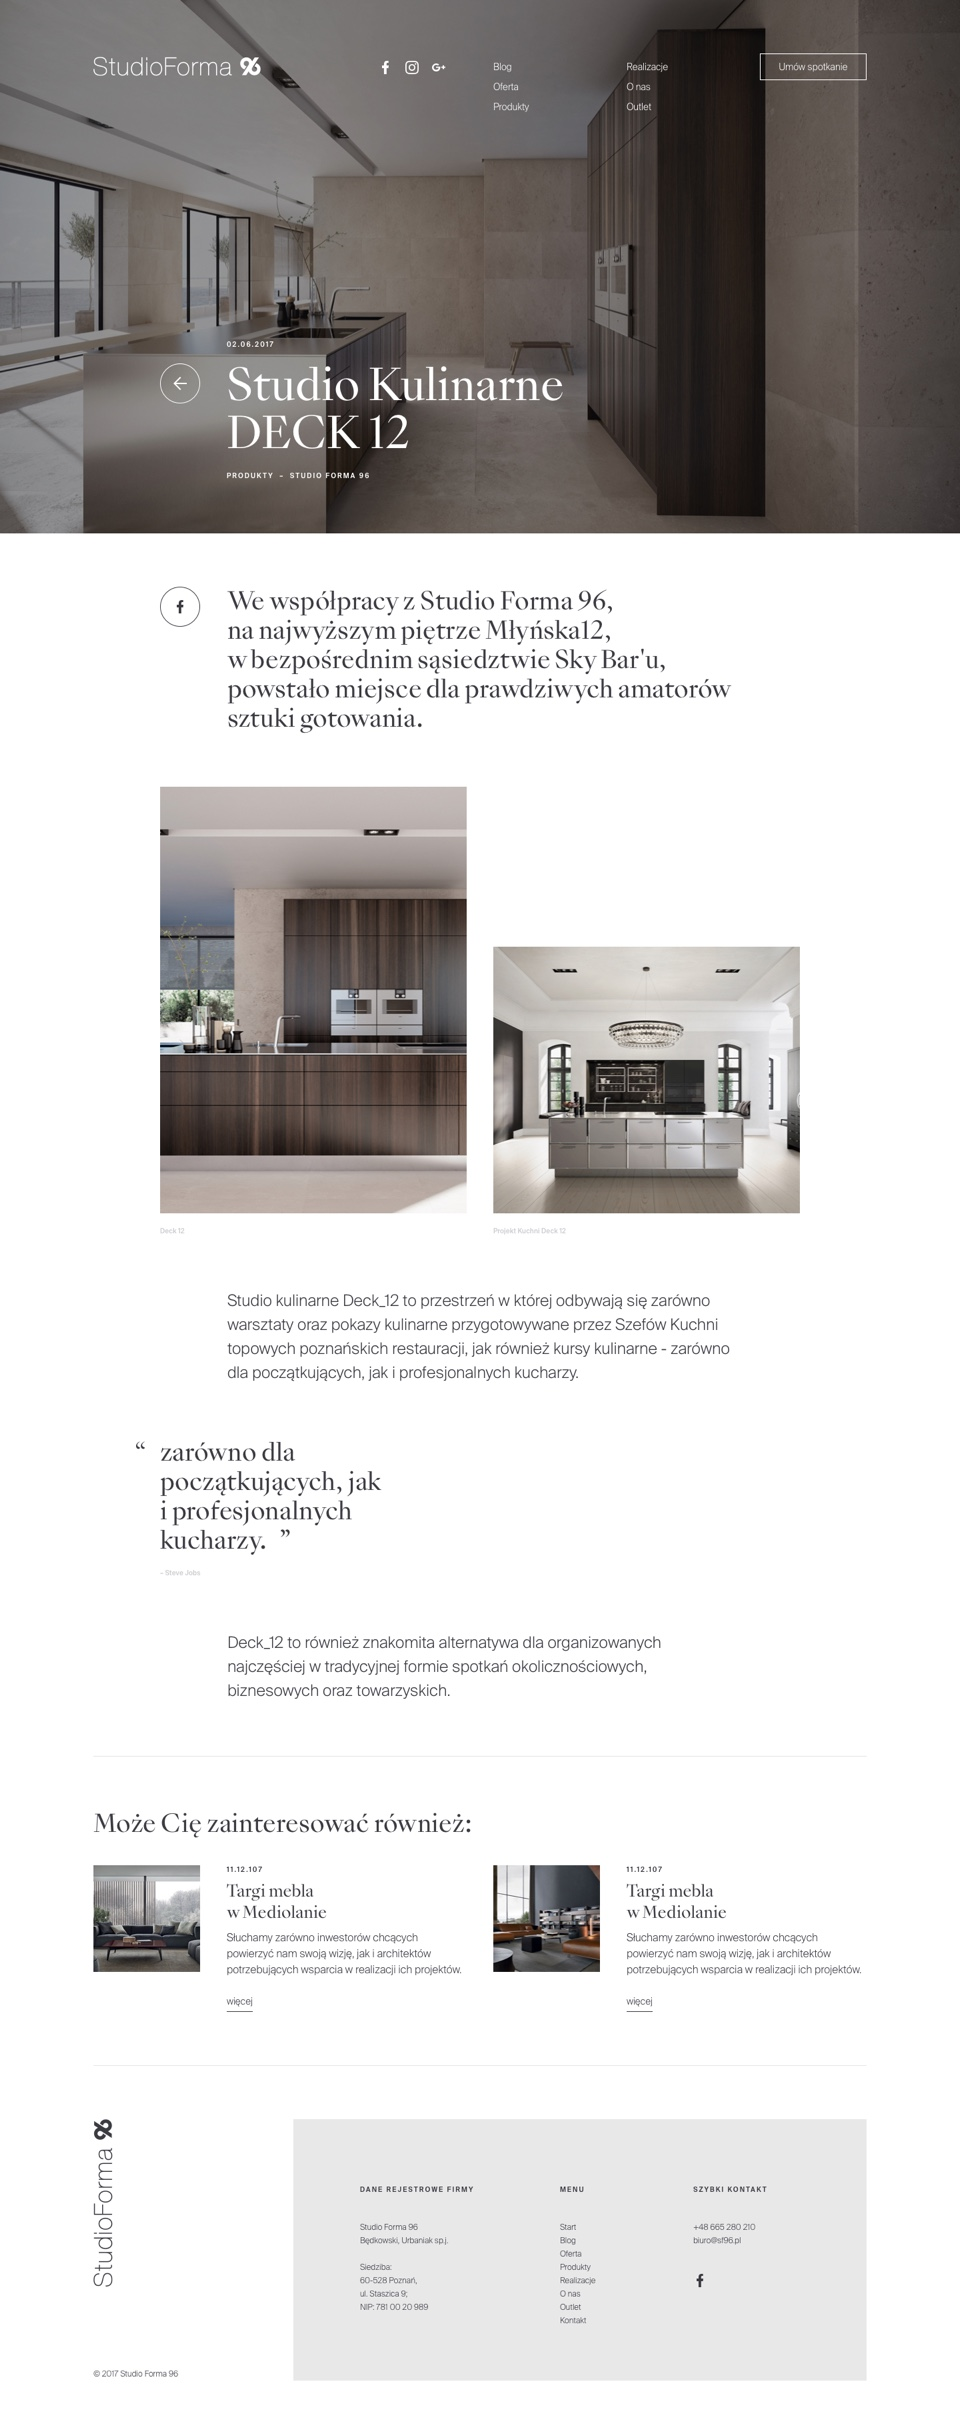 Product - web design - StudioForma 96 by Uniforma